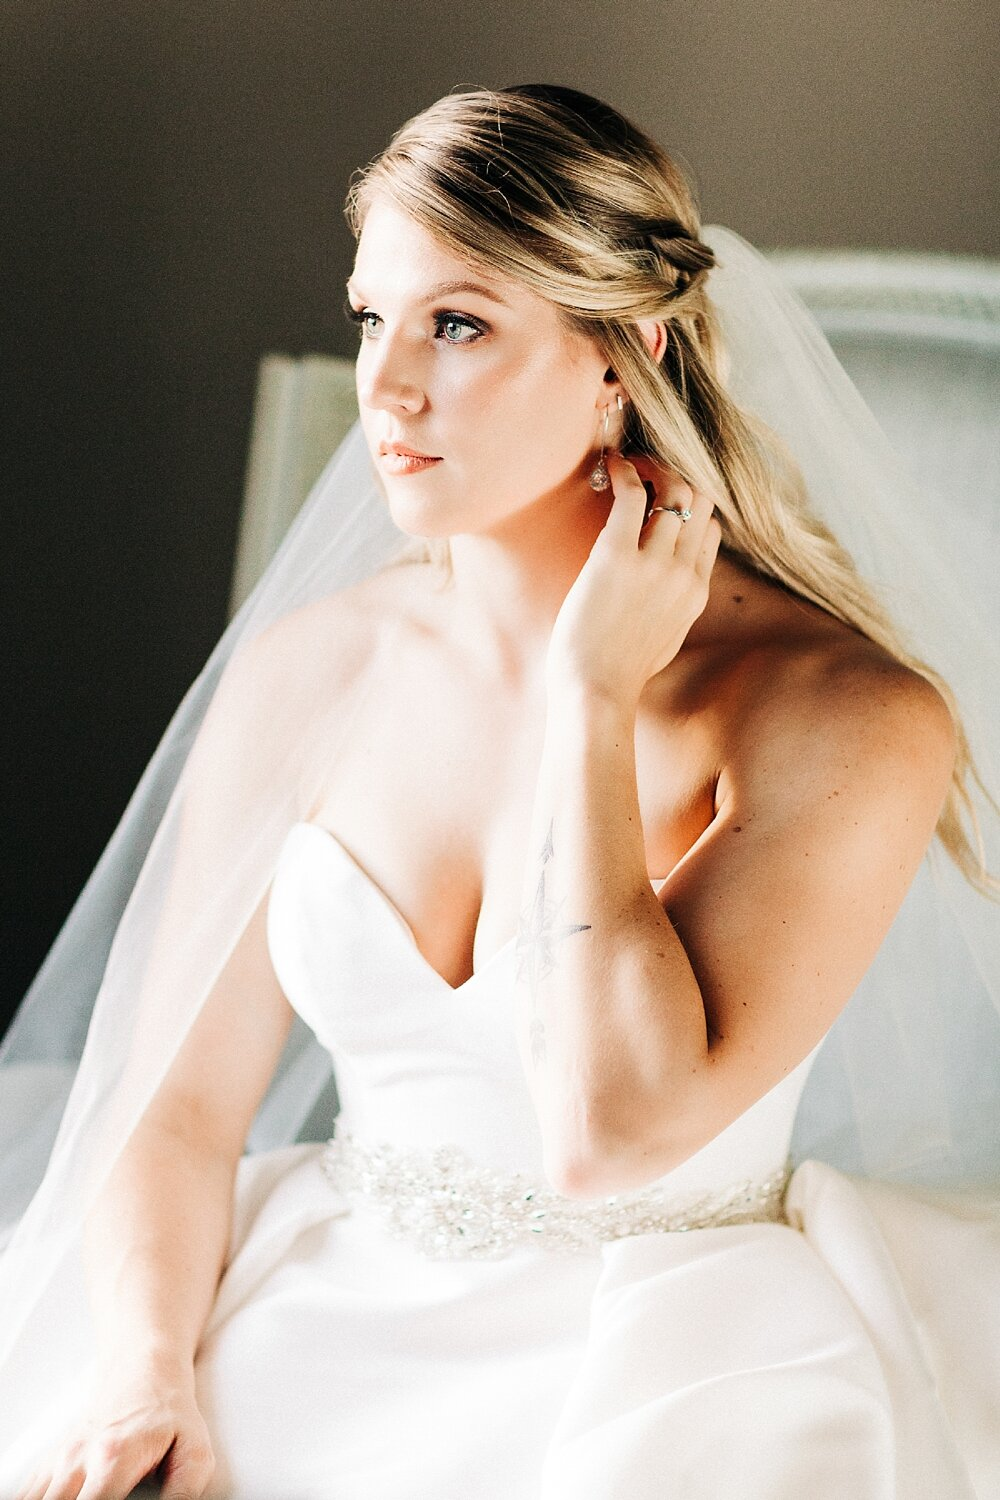 bride looks out a window while seated in a chair